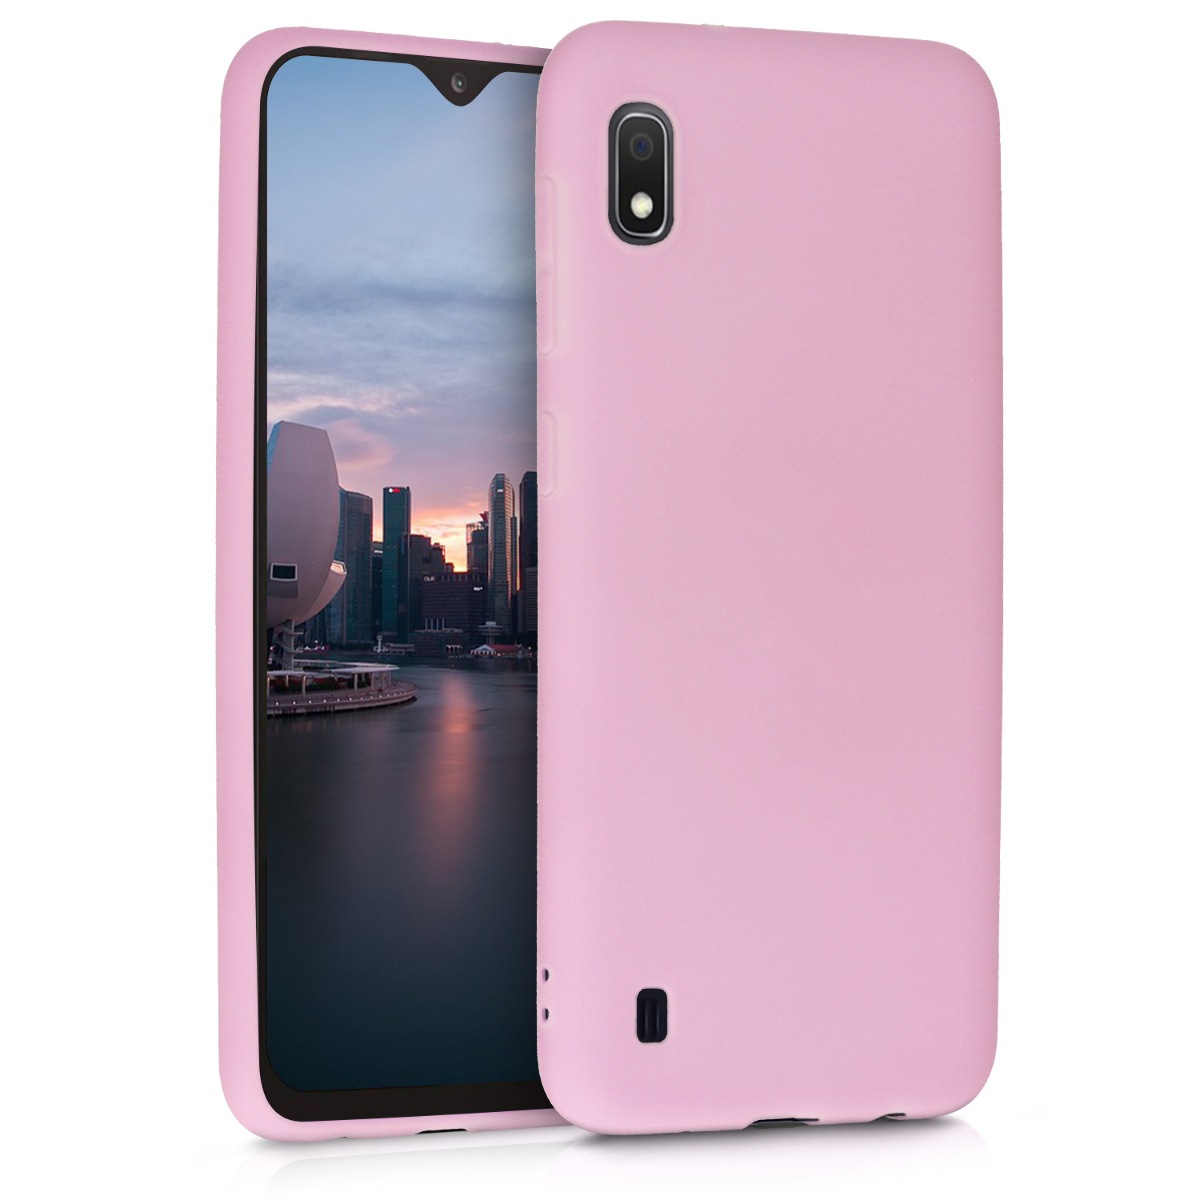 KW Θήκη Σιλικόνης Samsung Galaxy A10 - Antique Pink Matte (49814.52)